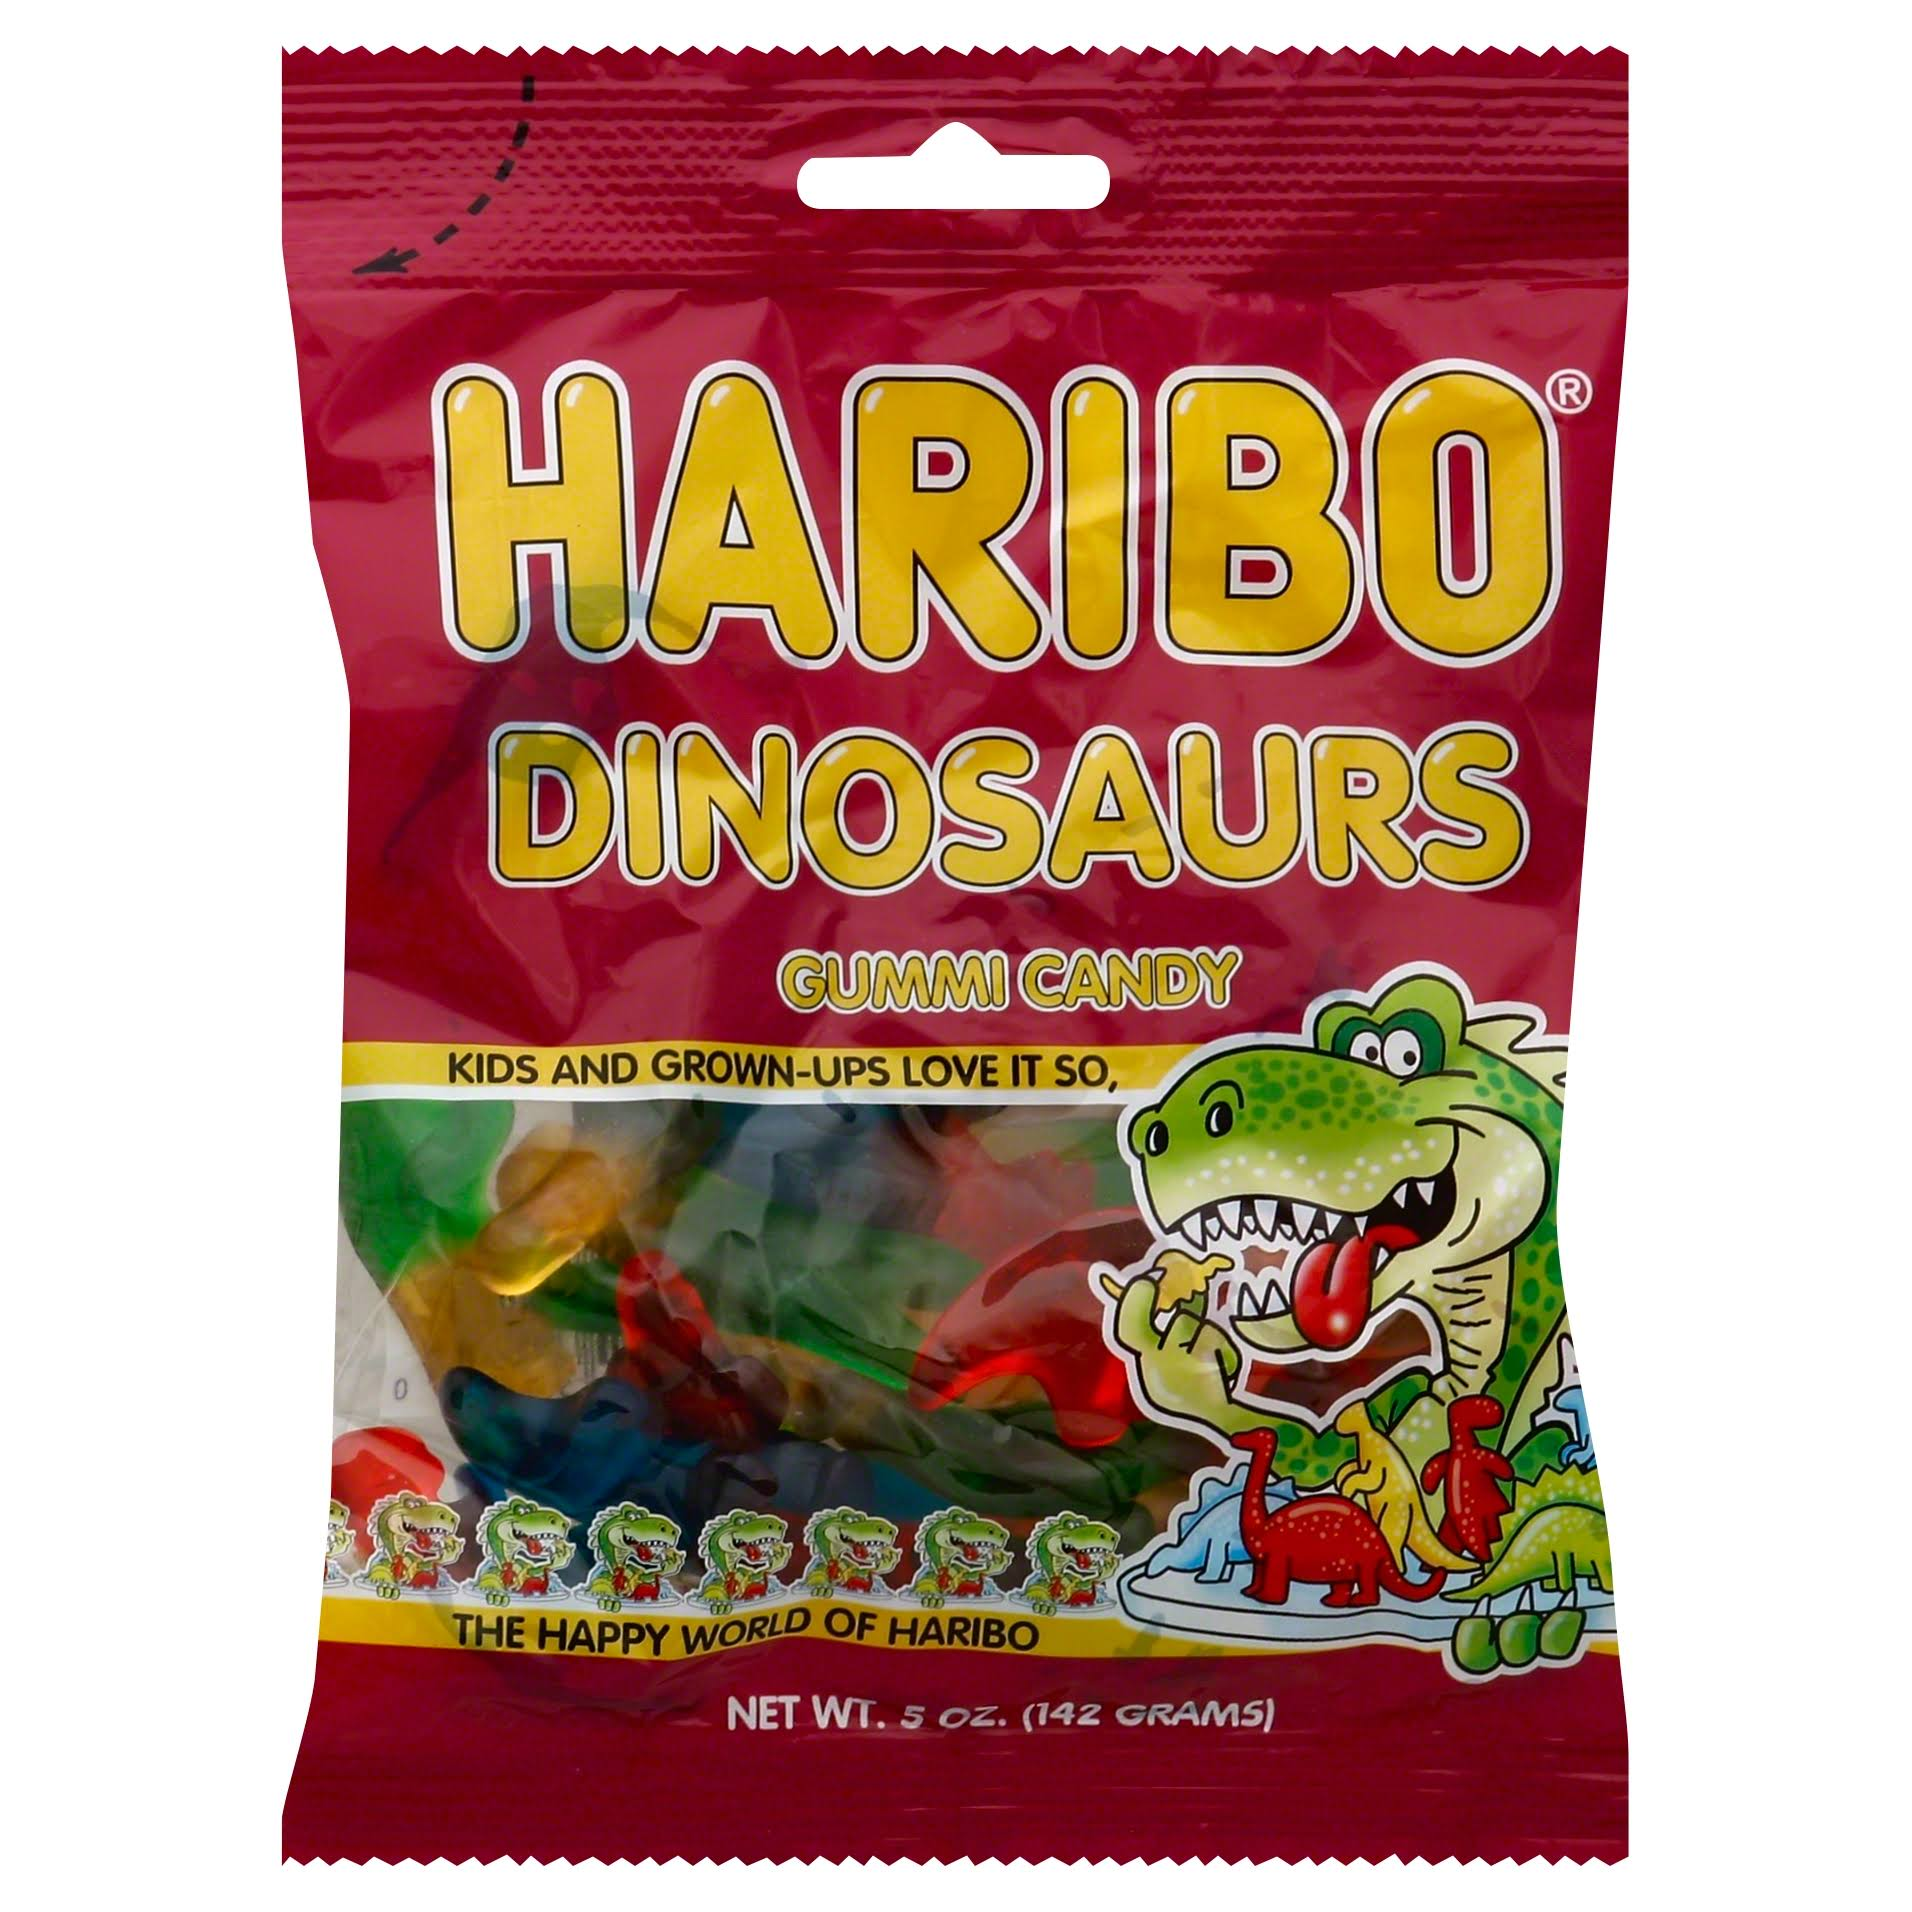 Haribo Dinosaurs Gummy Candy - 142g